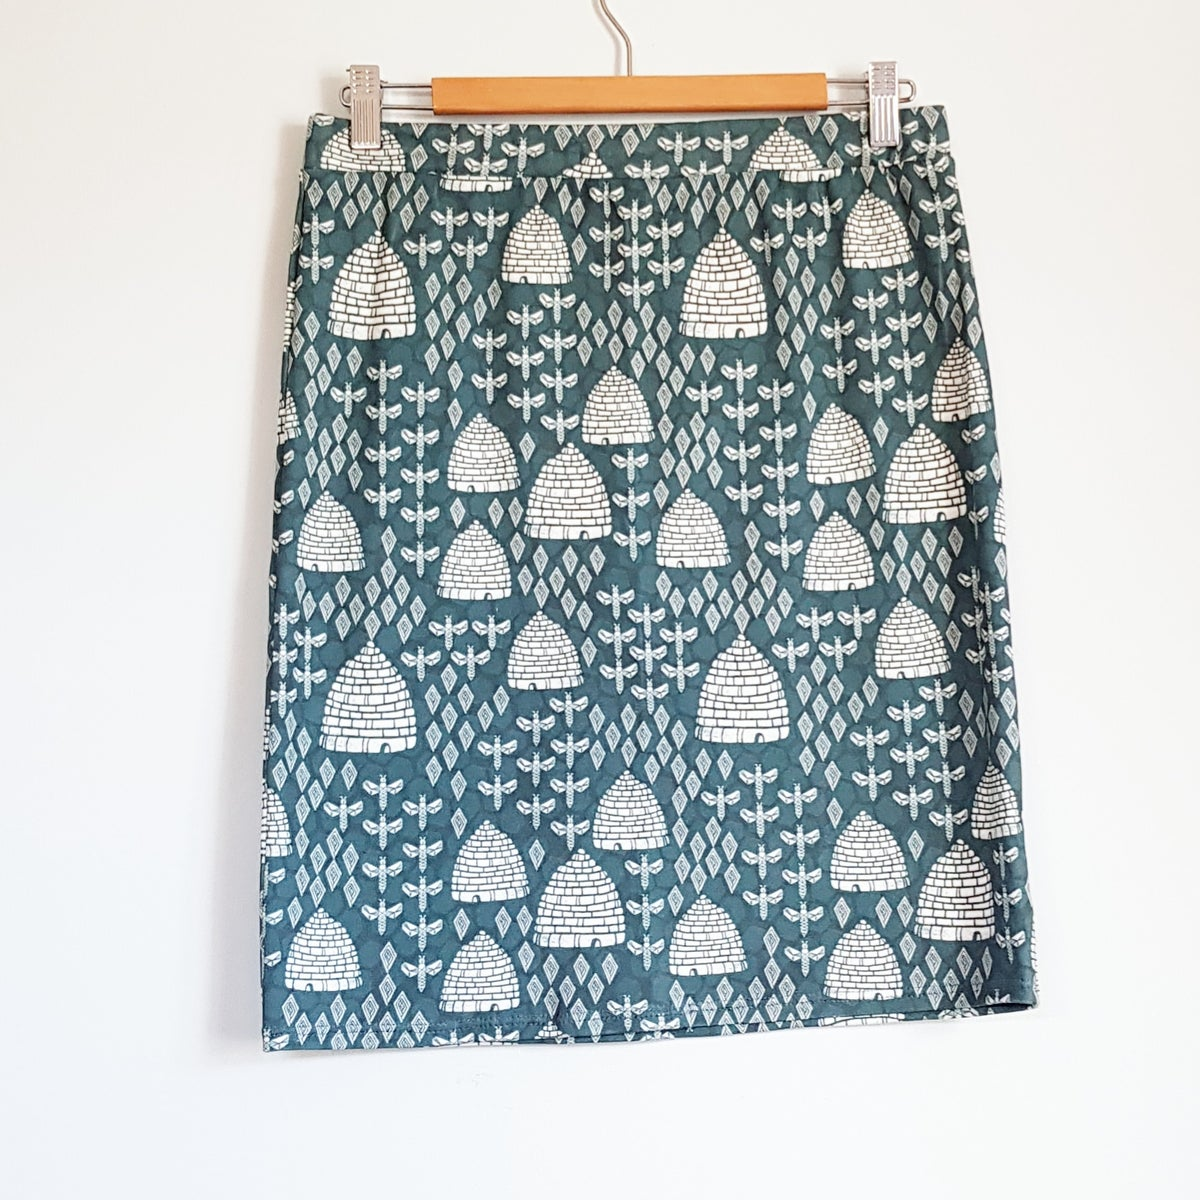 Image of Pencil Skirt - Beekeeper *LAST ONE SIZE S*